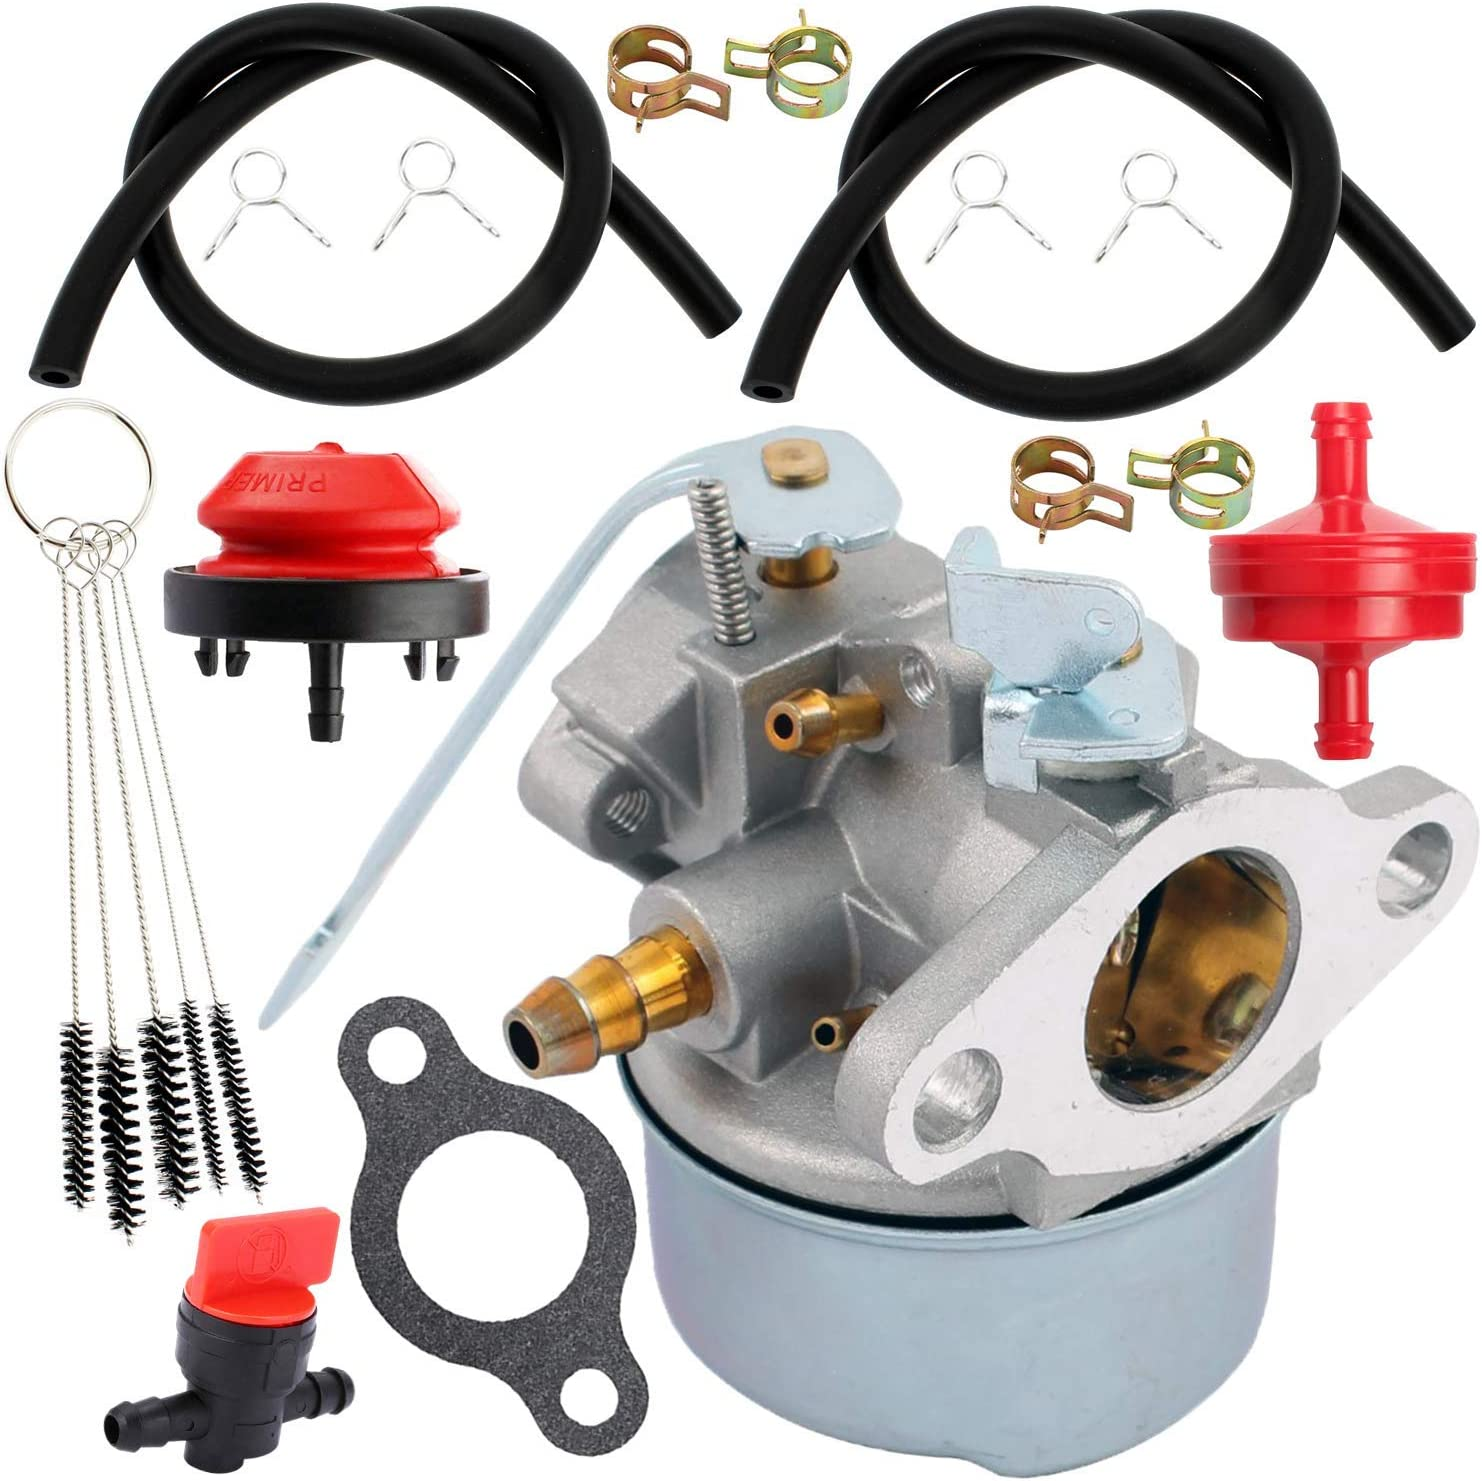 YOFMOO Sale SALE% OFF Carburetor Ranking TOP3 Kit Compatible for Toro CCR1000 Powerlite 3817